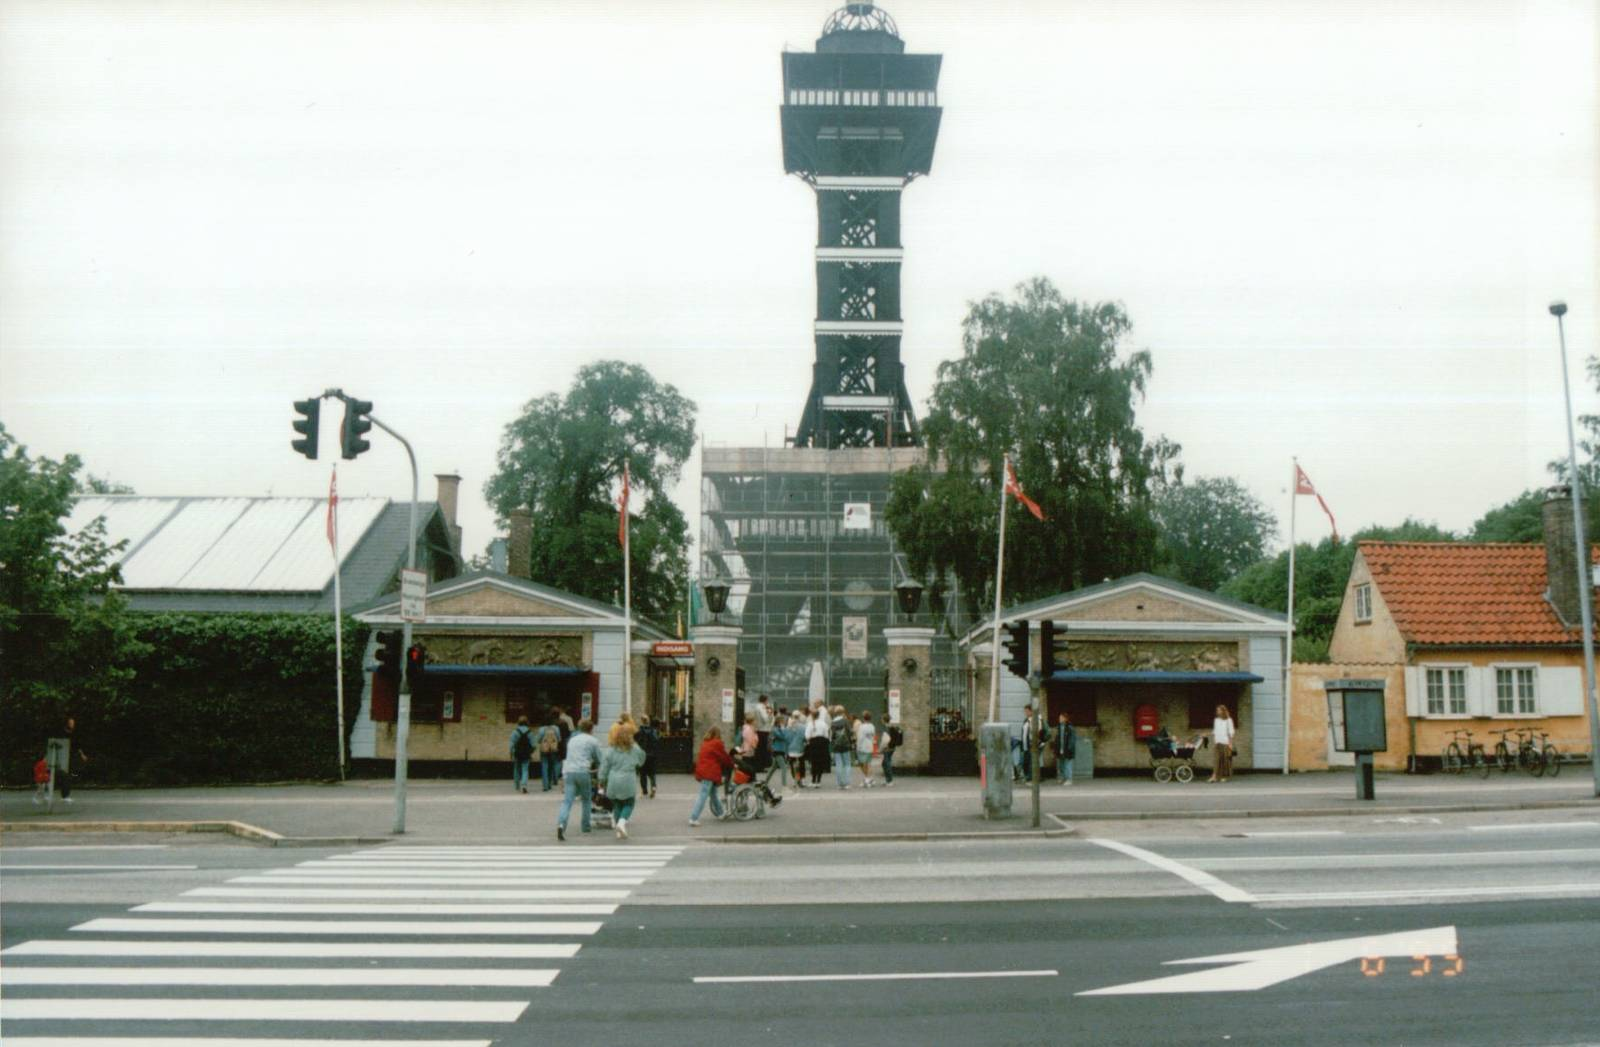 Copenhagen Zoo 1995 The Old Main Entrance And The Historic Zoo Tower Zoochat